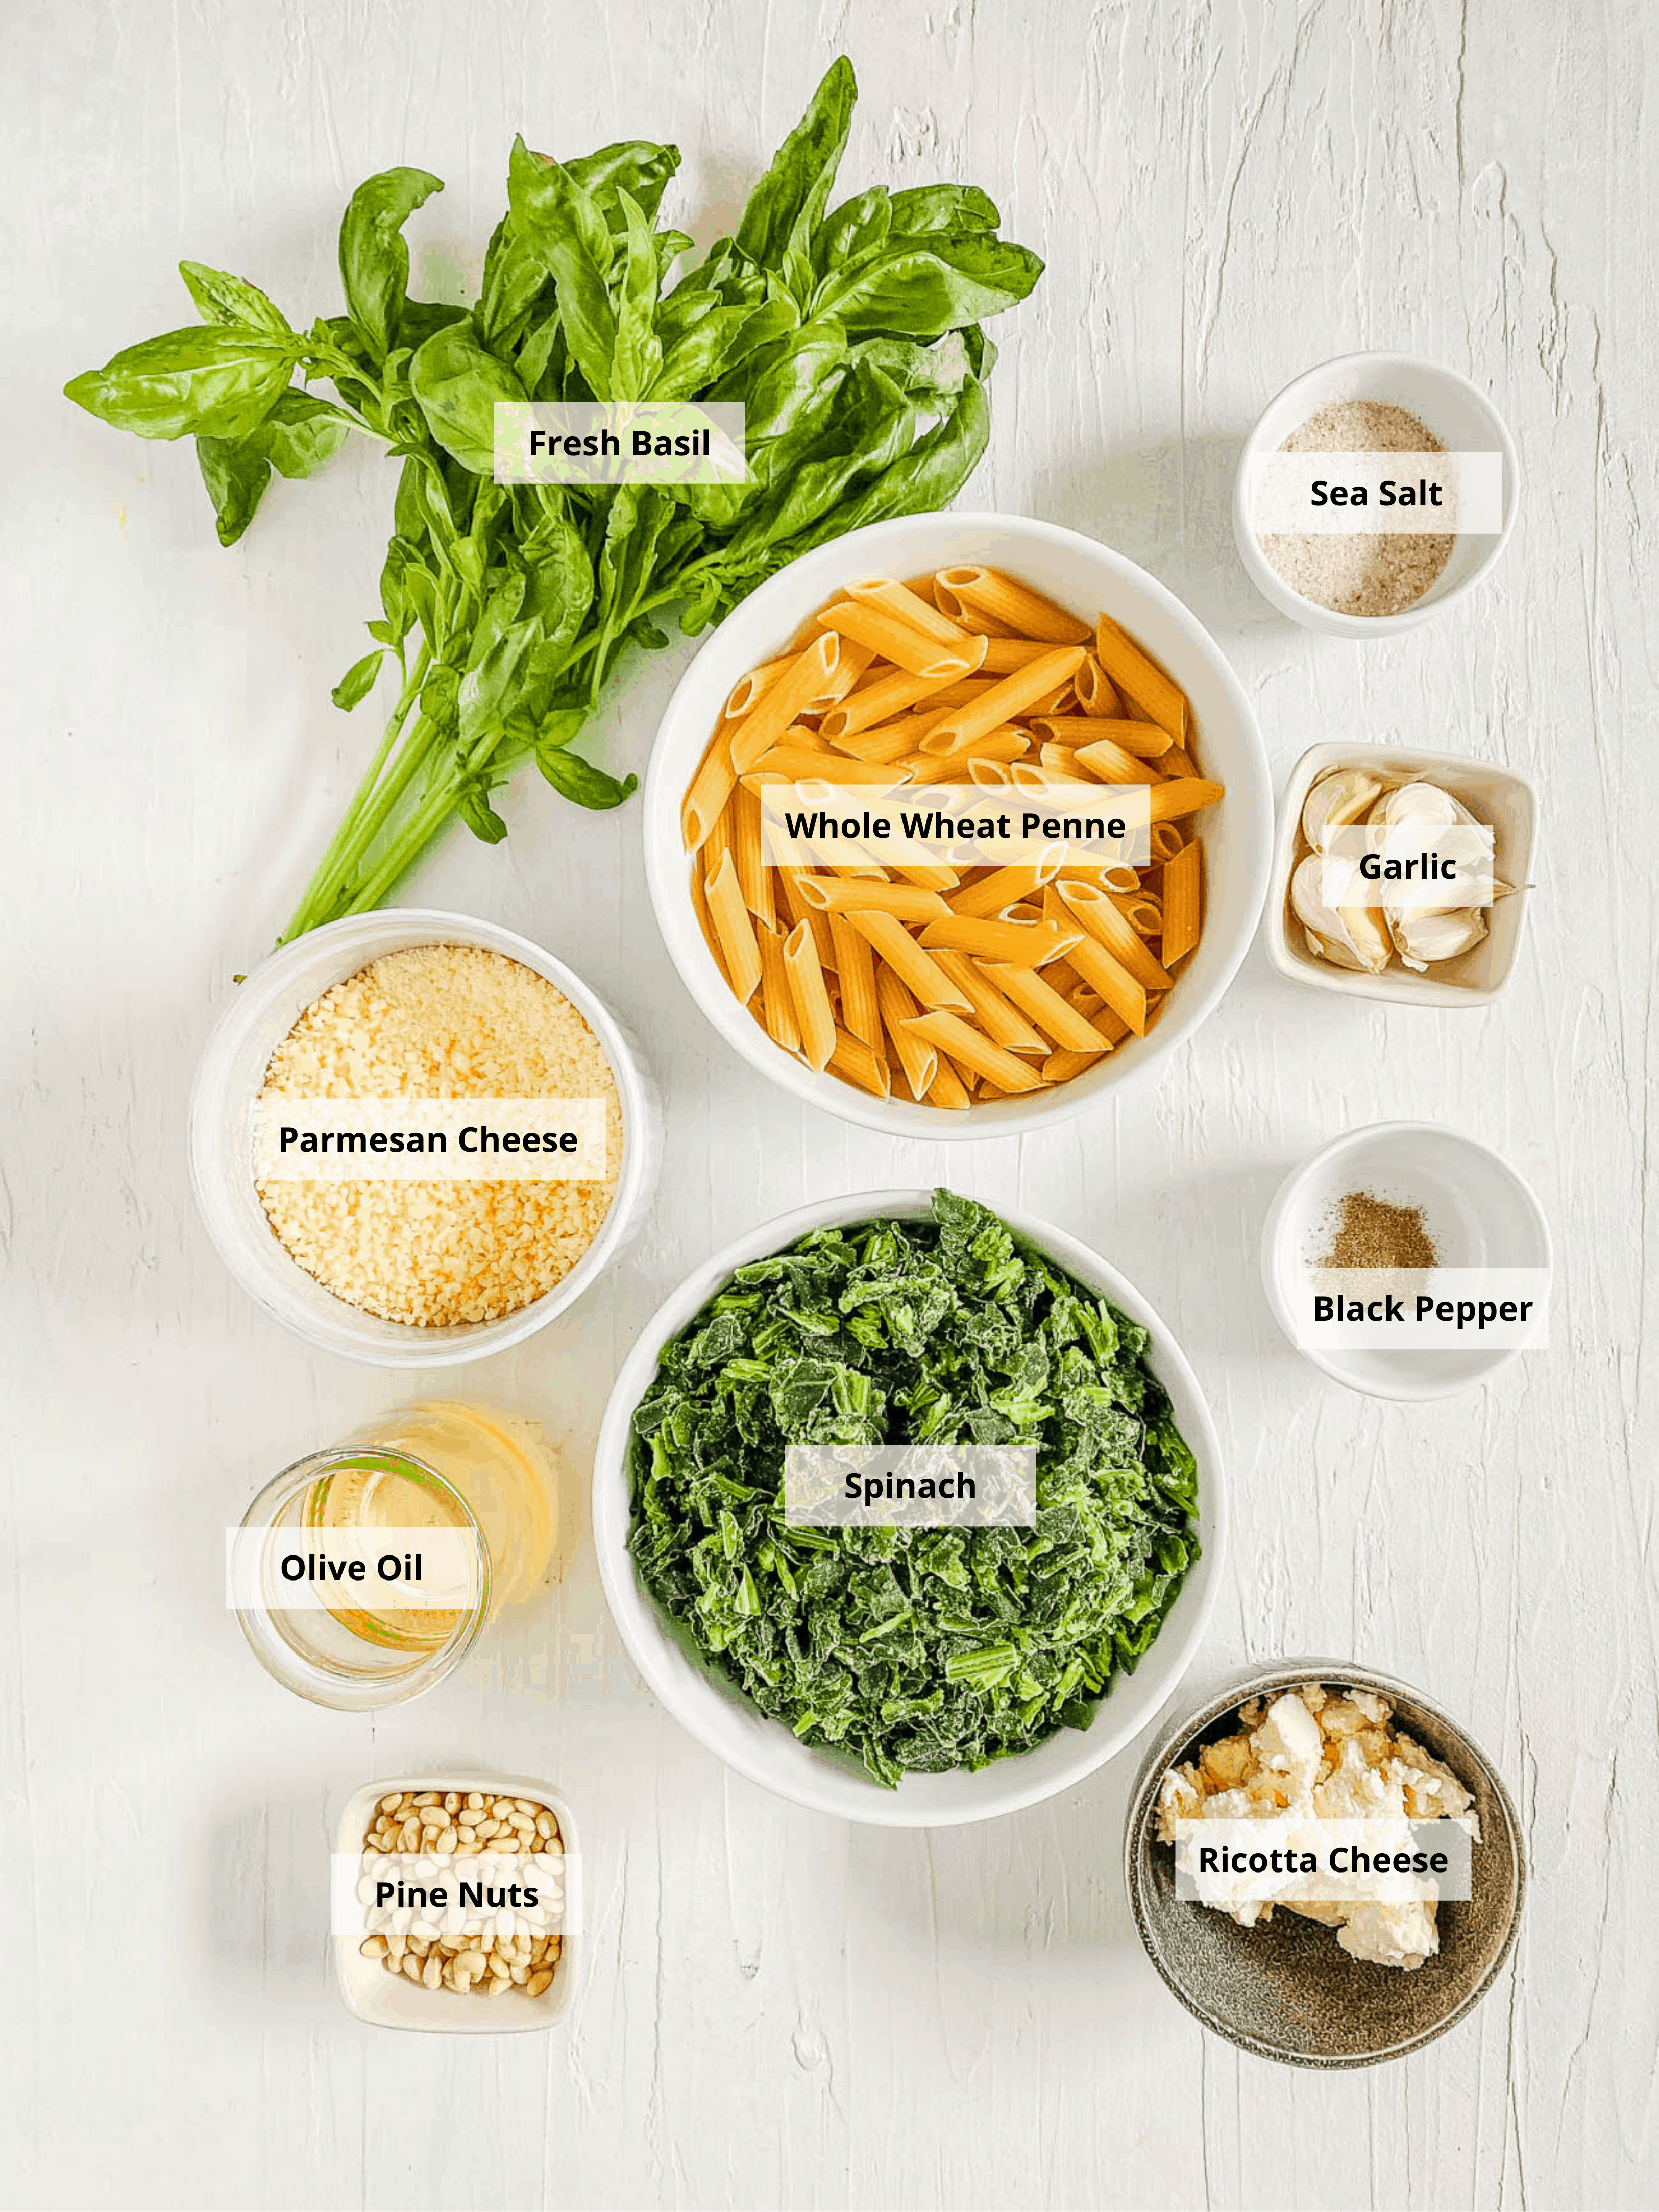 ingredients for vegetarian pesto pasta recipe with spinach, basil and pine nuts